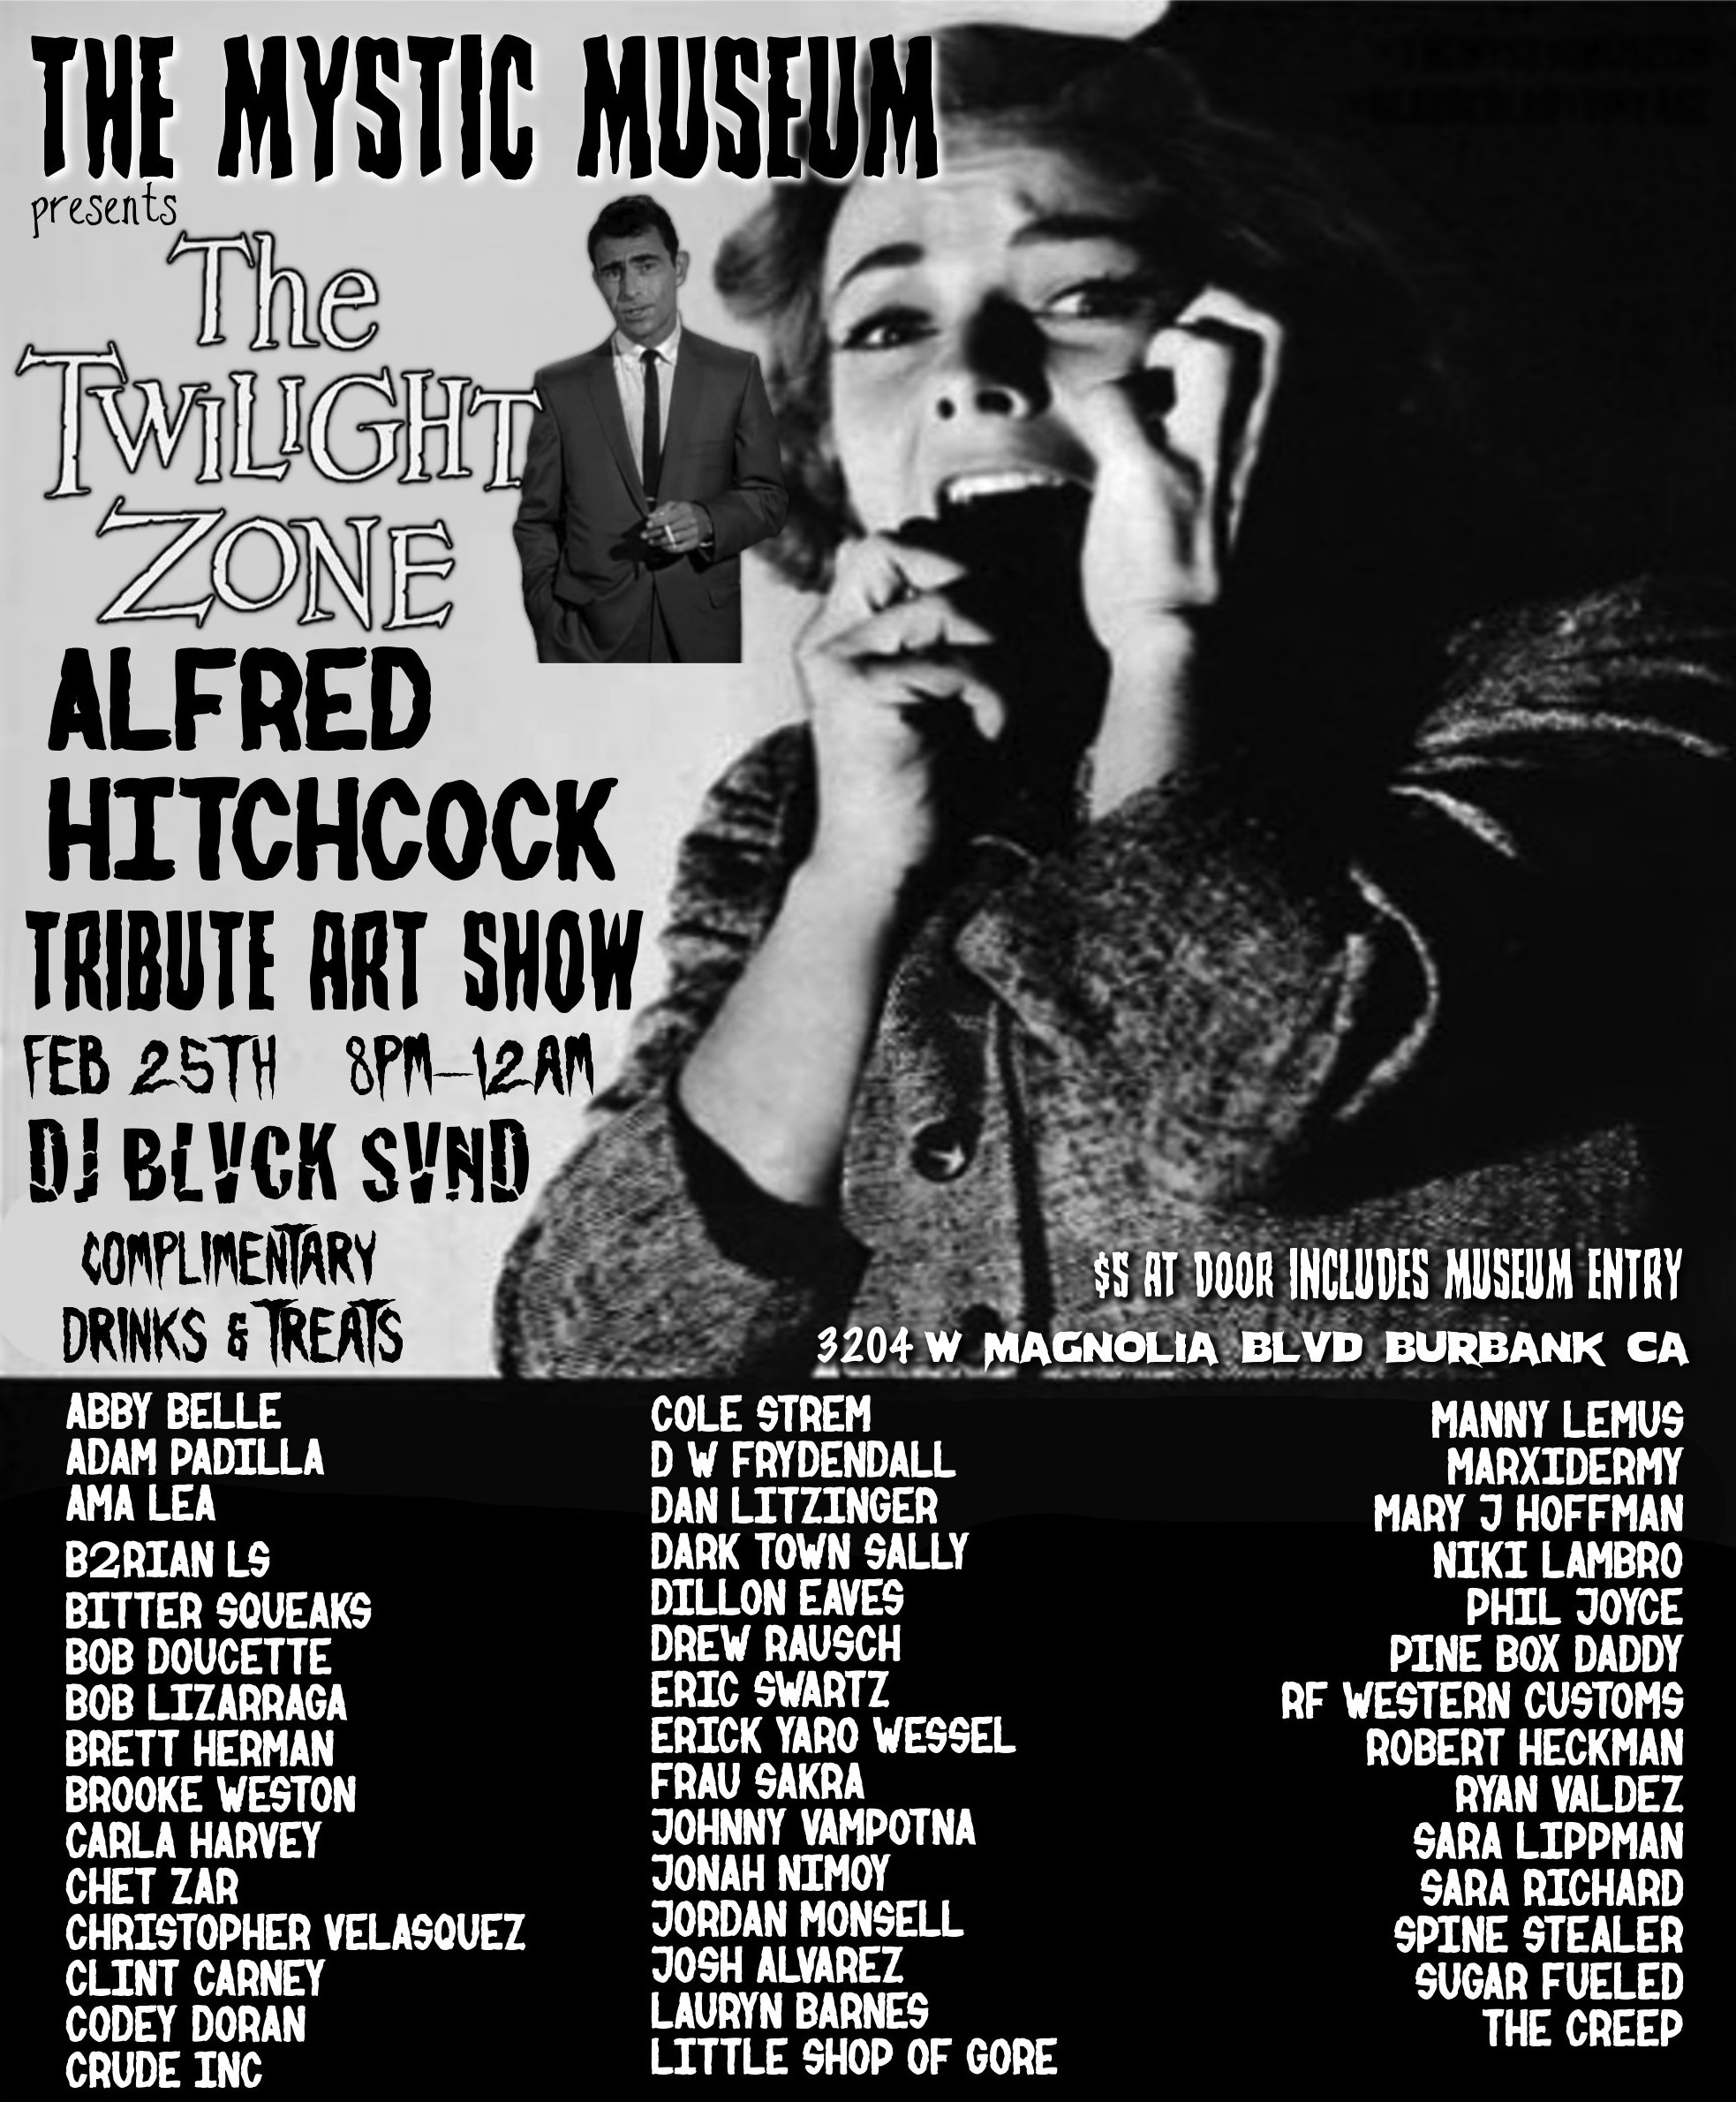 TZ HITCHCOCK OFFICIAL FLYER 1